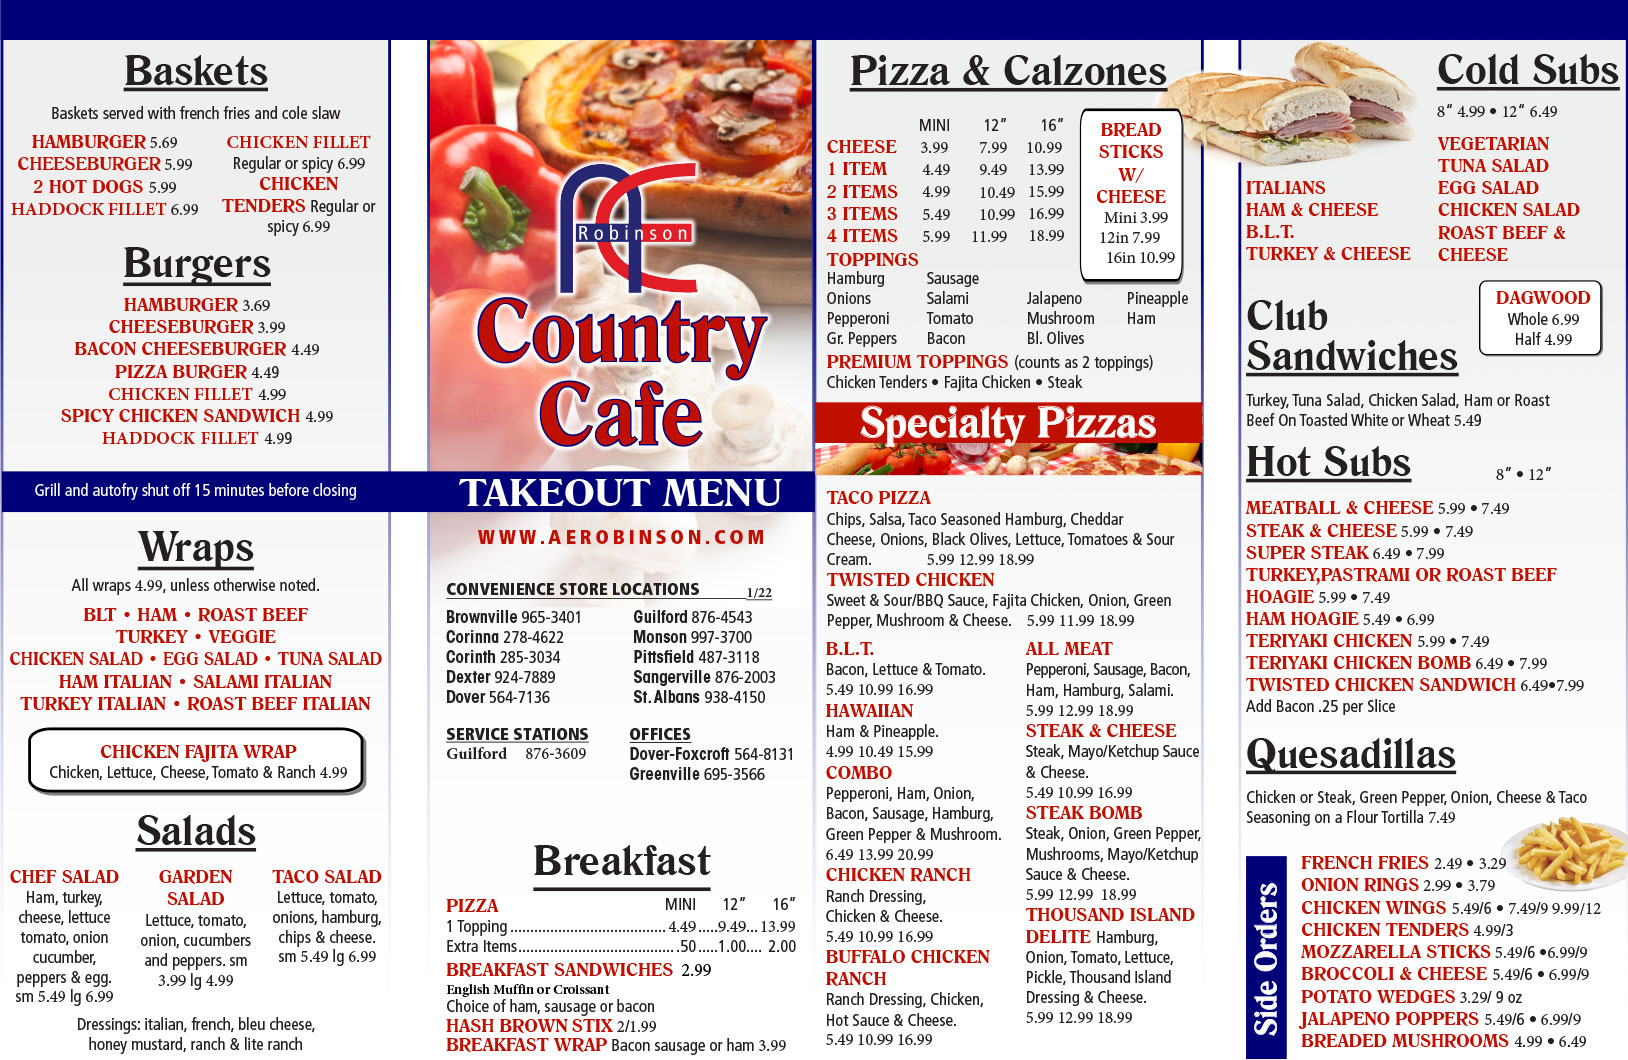 Country Cafe Menu, Click Here To View